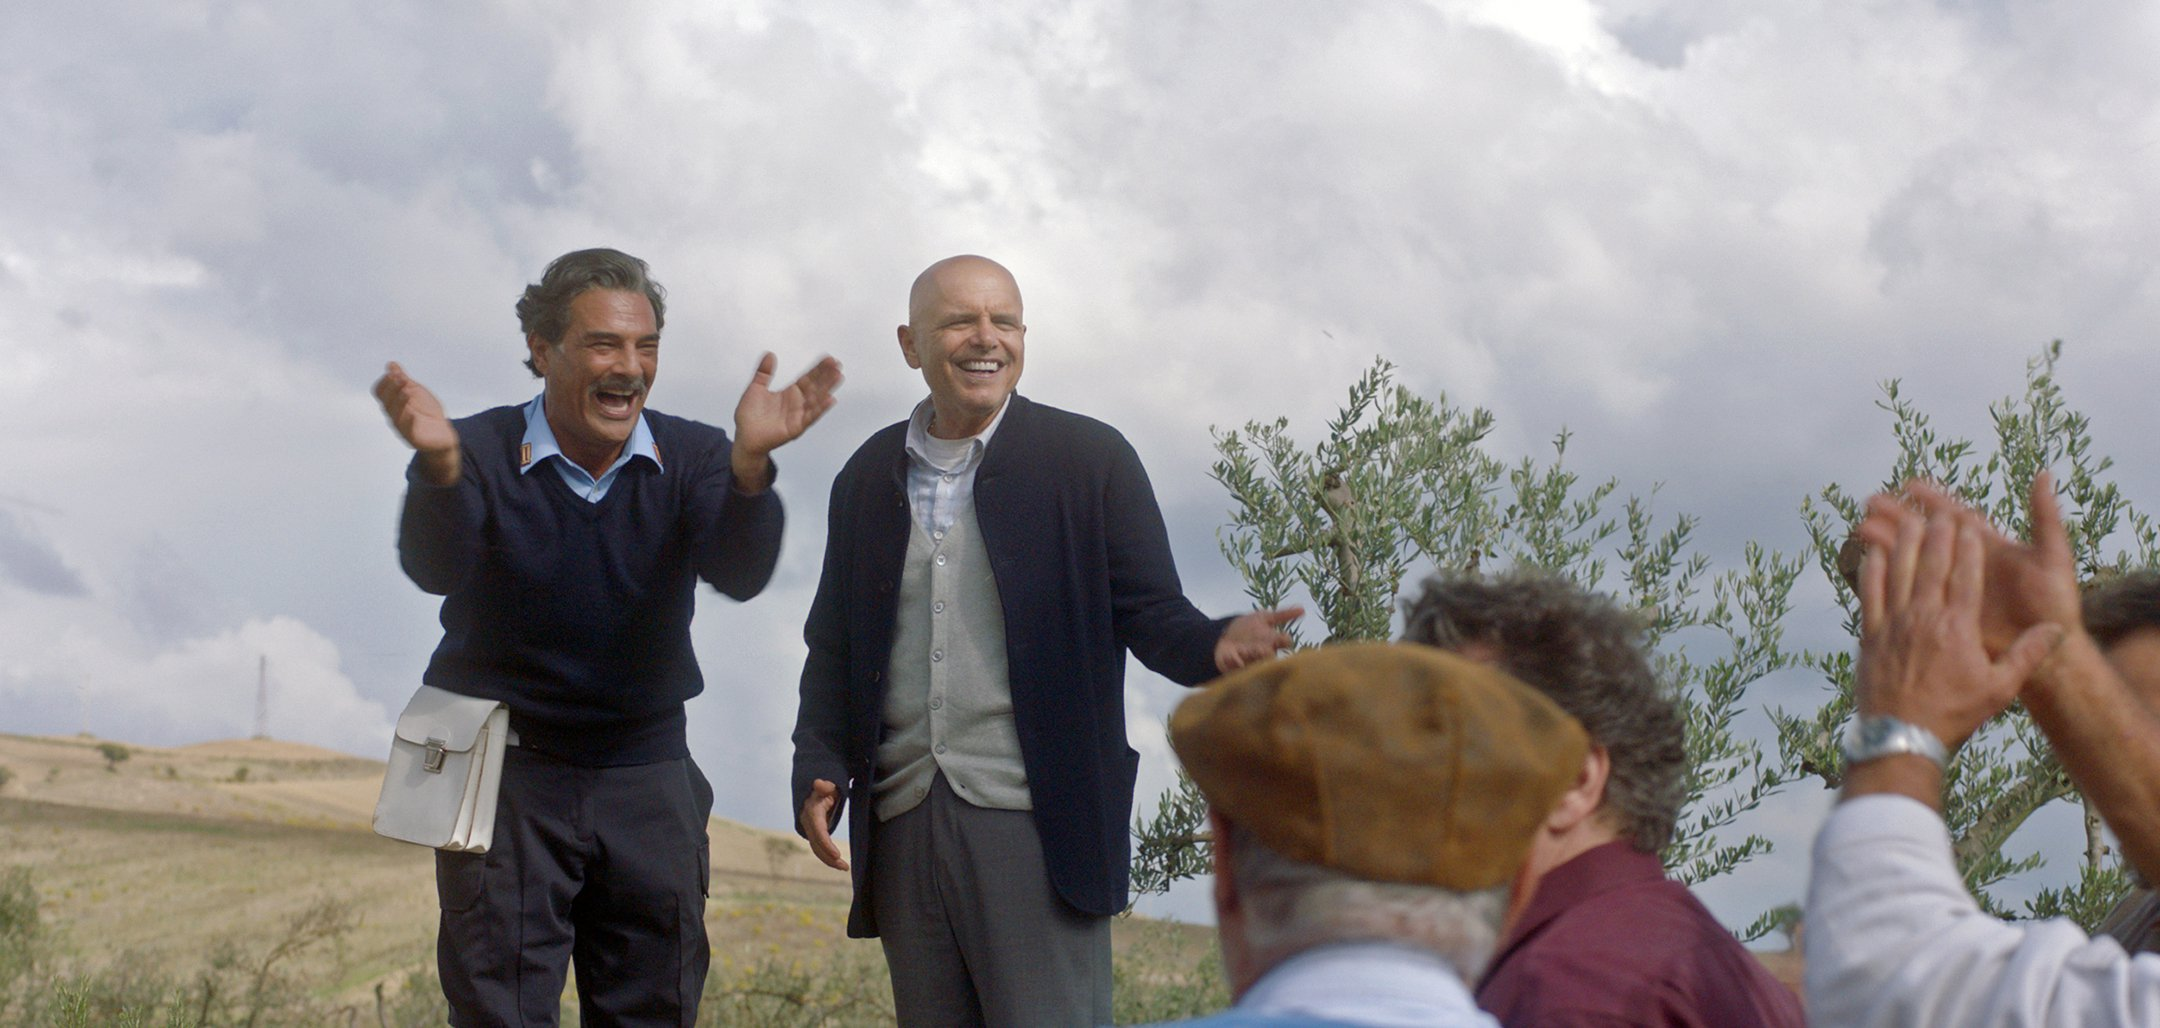 Marco Leonardi as Luca and Joe Pantoliano as Mark in a stil from 'From the Vine' (2019)